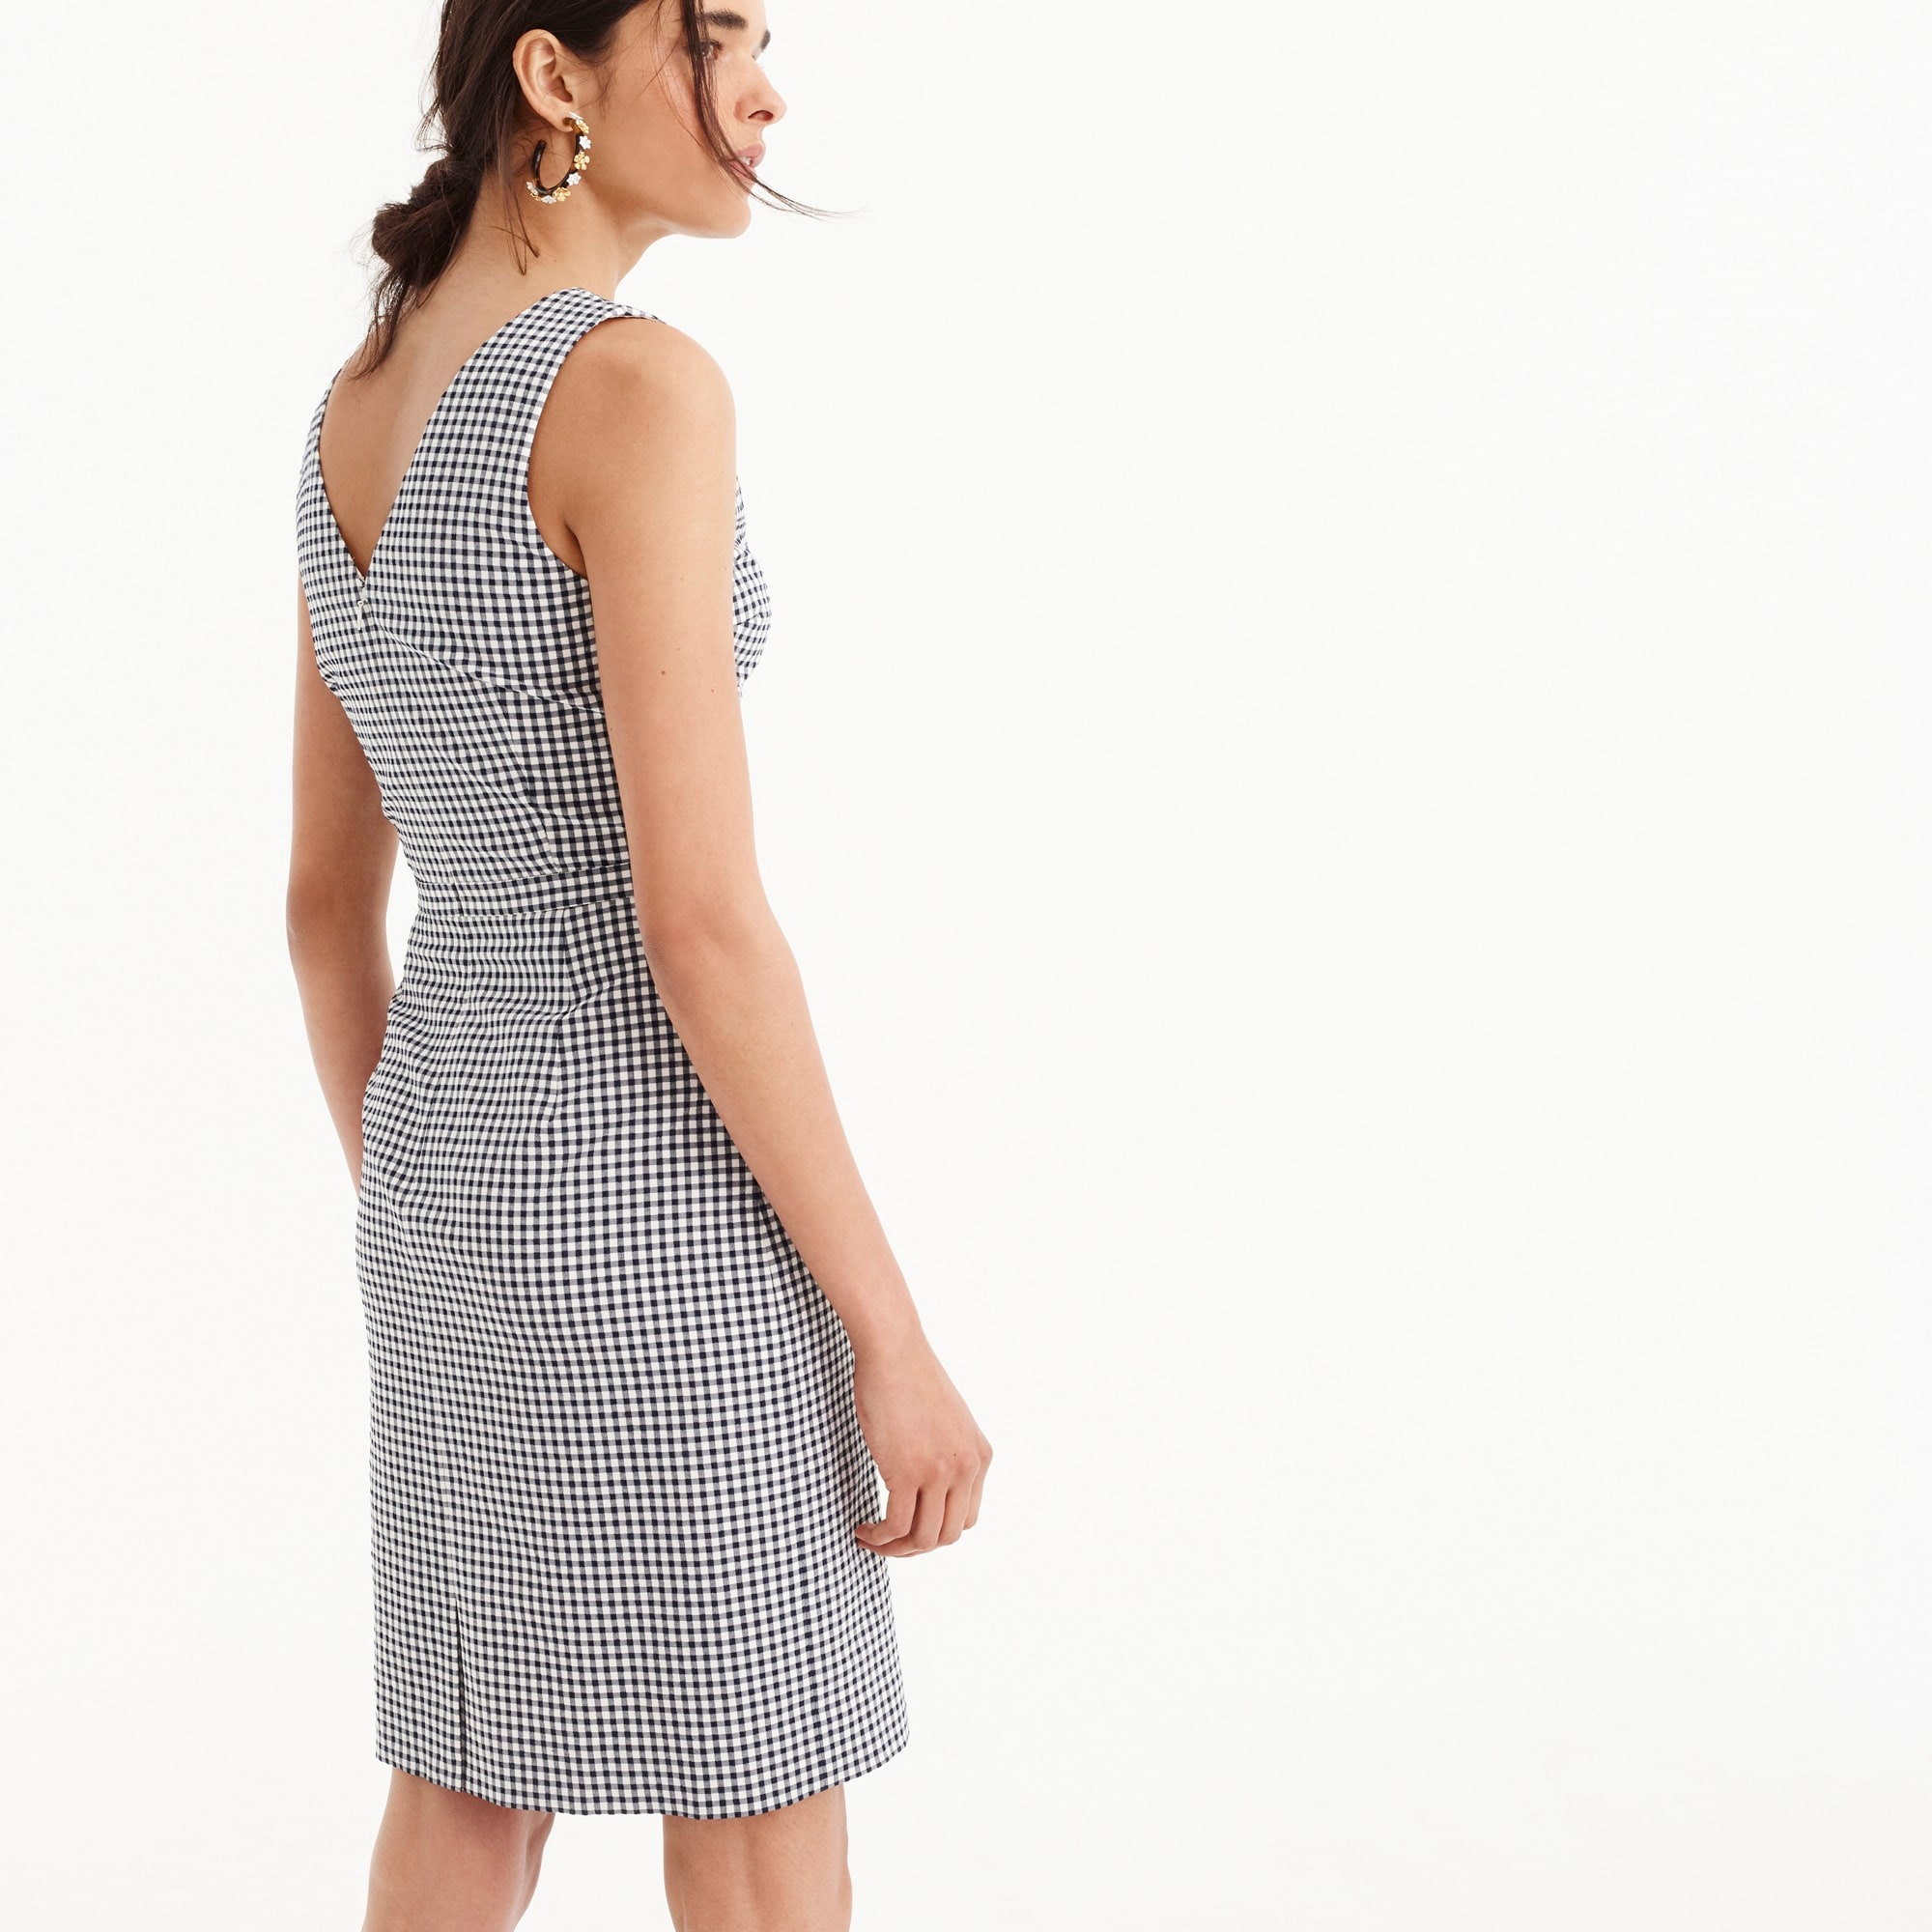 Image 3 for V-neck seersucker dress in gingham